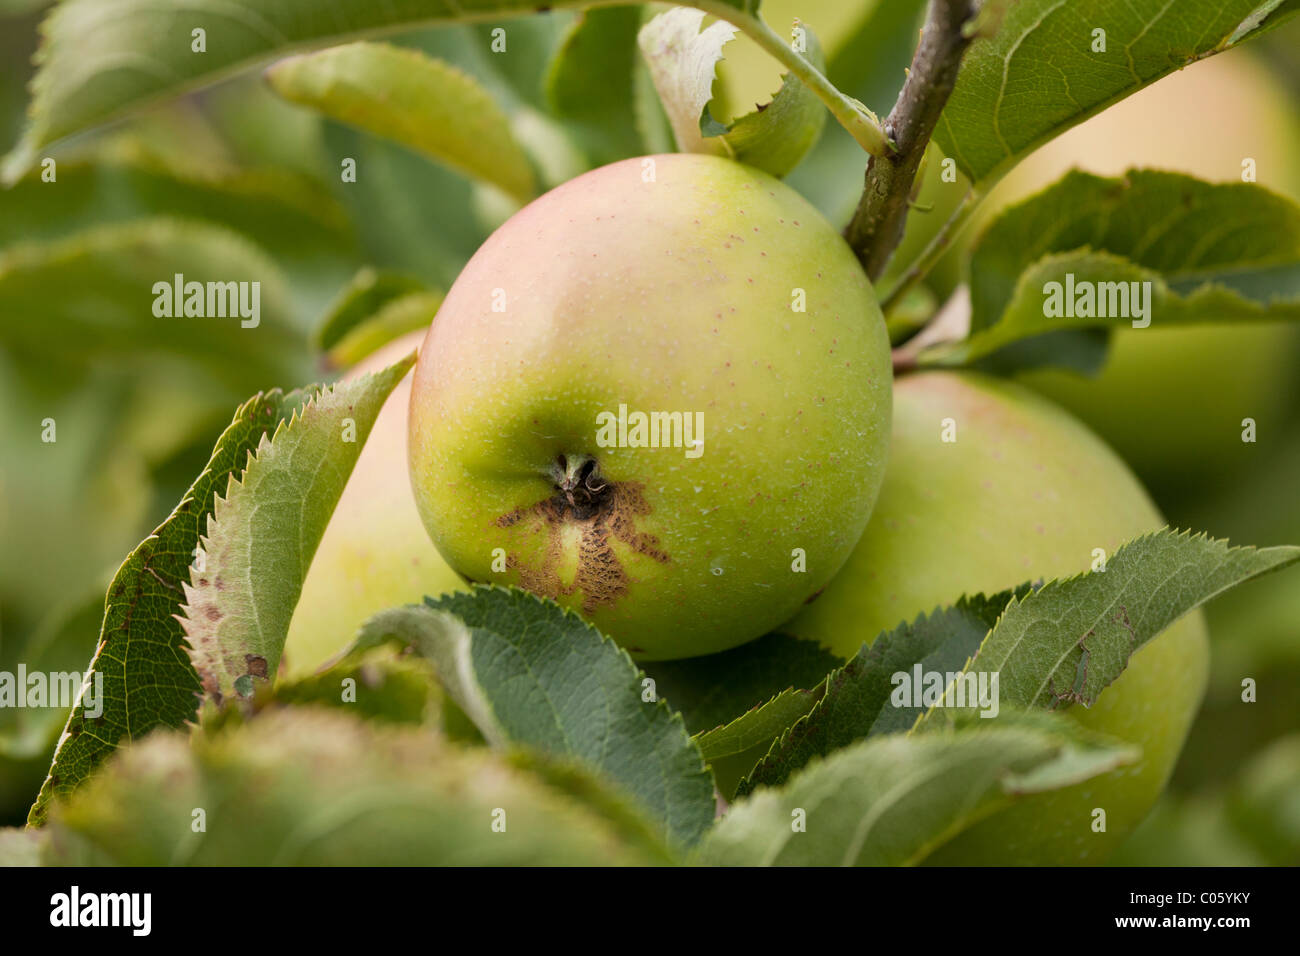 green apple fruit tree. a green apple cluster on tree branch. crispin with little scab surrounded by other apples and leaves. fruit